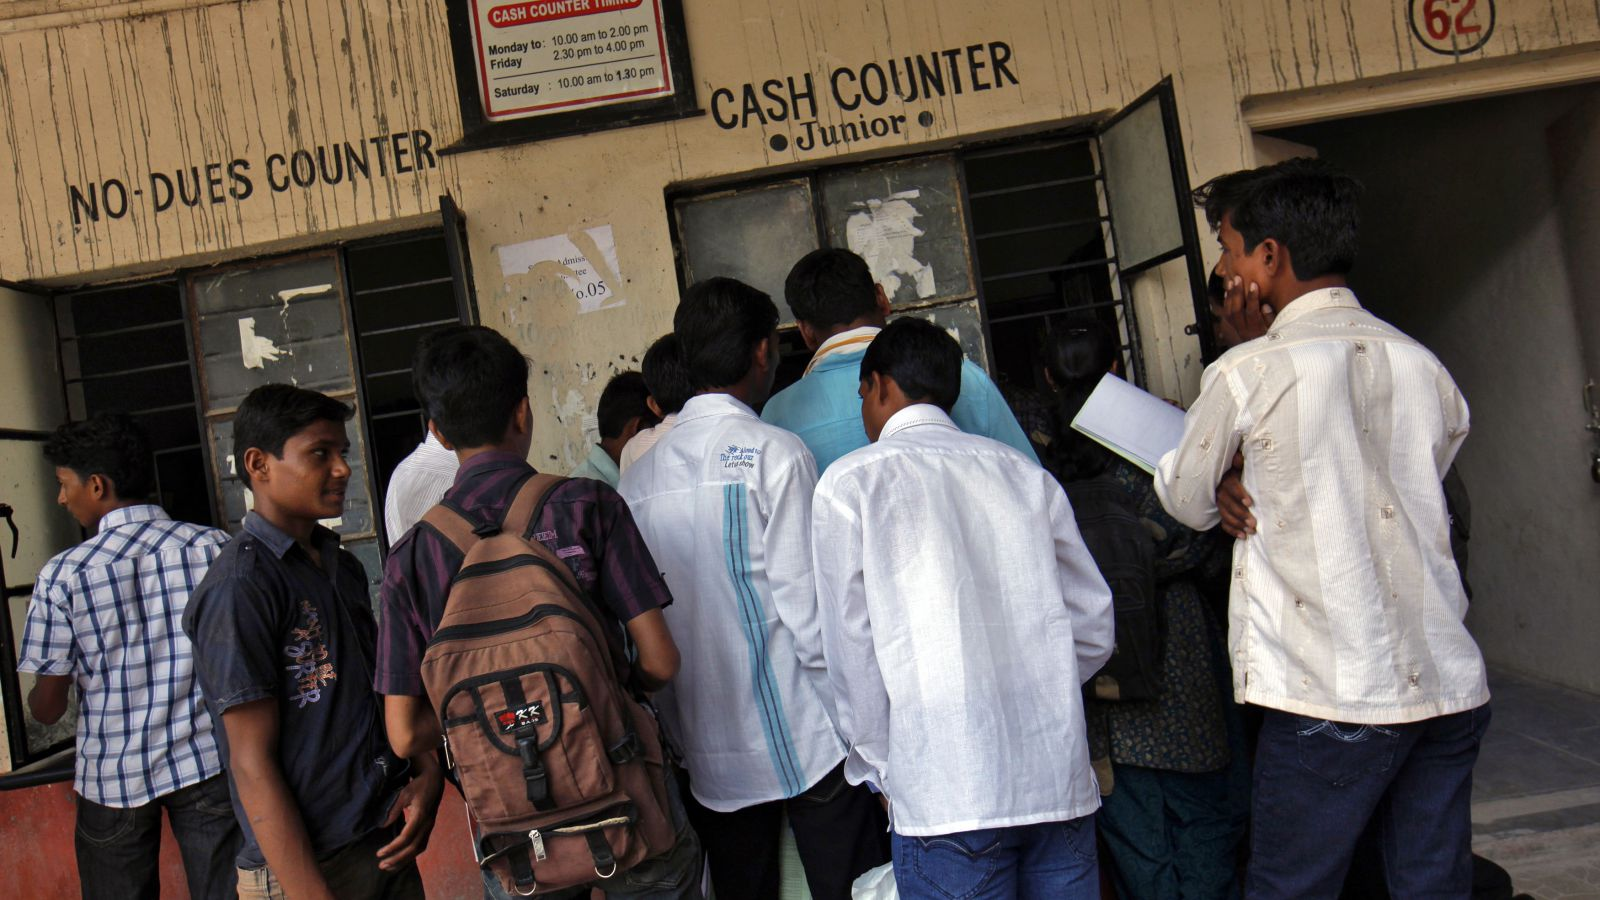 """Students submit their fees at the cash counter of the Balbhim College for Art, Science and Commerce in Beed, about 350 km (220 miles) east of Mumbai, June 28, 2012. India says the voice urging the 10 militants on to bloodshed during the assault on Mumbai in November 2008 was that of Indian-born Sayed Zabiuddin Ansari, who was speaking from a """"control room"""" in the Pakistani city of Karachi. New Delhi is hoping that Ansari's capture in June 2012 will help prove its allegation - strenuously denied in Islamabad - that the Mumbai carnage was directed by people connected with Pakistan's security establishment, particularly the shadowy ISI military intelligence agency. Ansari studied at Balbhim College. Picture taken June 28, 2012."""